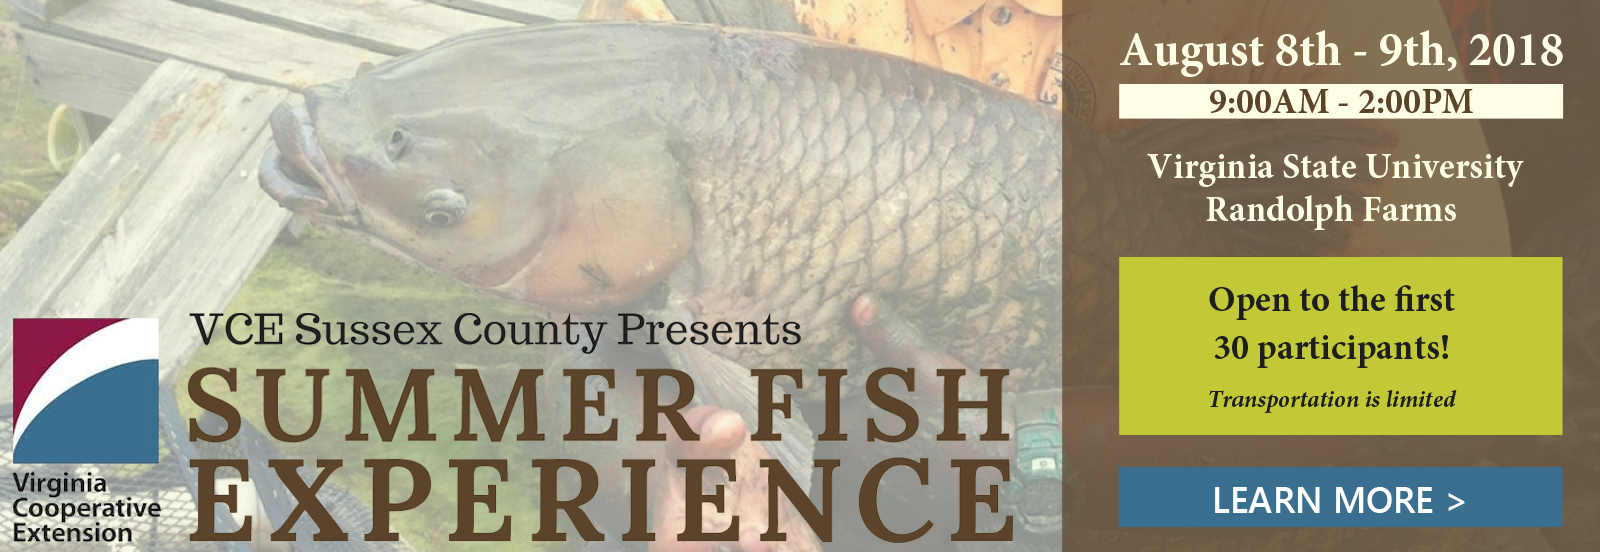 VCE Sussex County Presents Summer Fish Experience